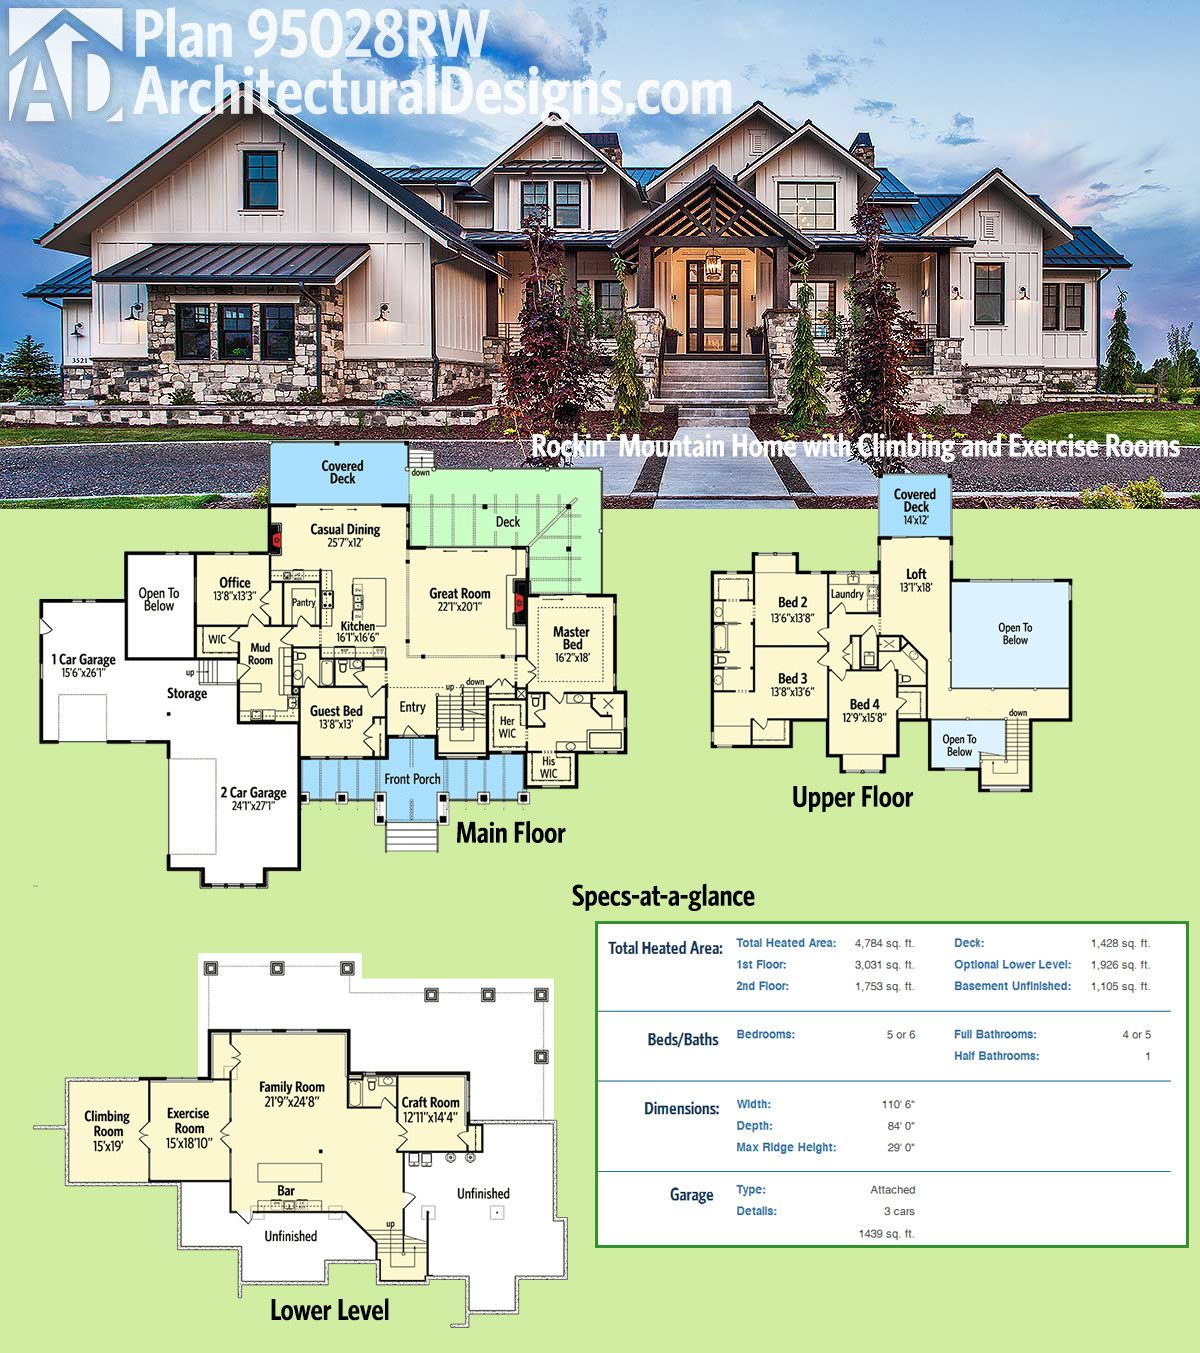 Plan 95028rw rockin 39 mountain home with climbing and for One story mountain house plans